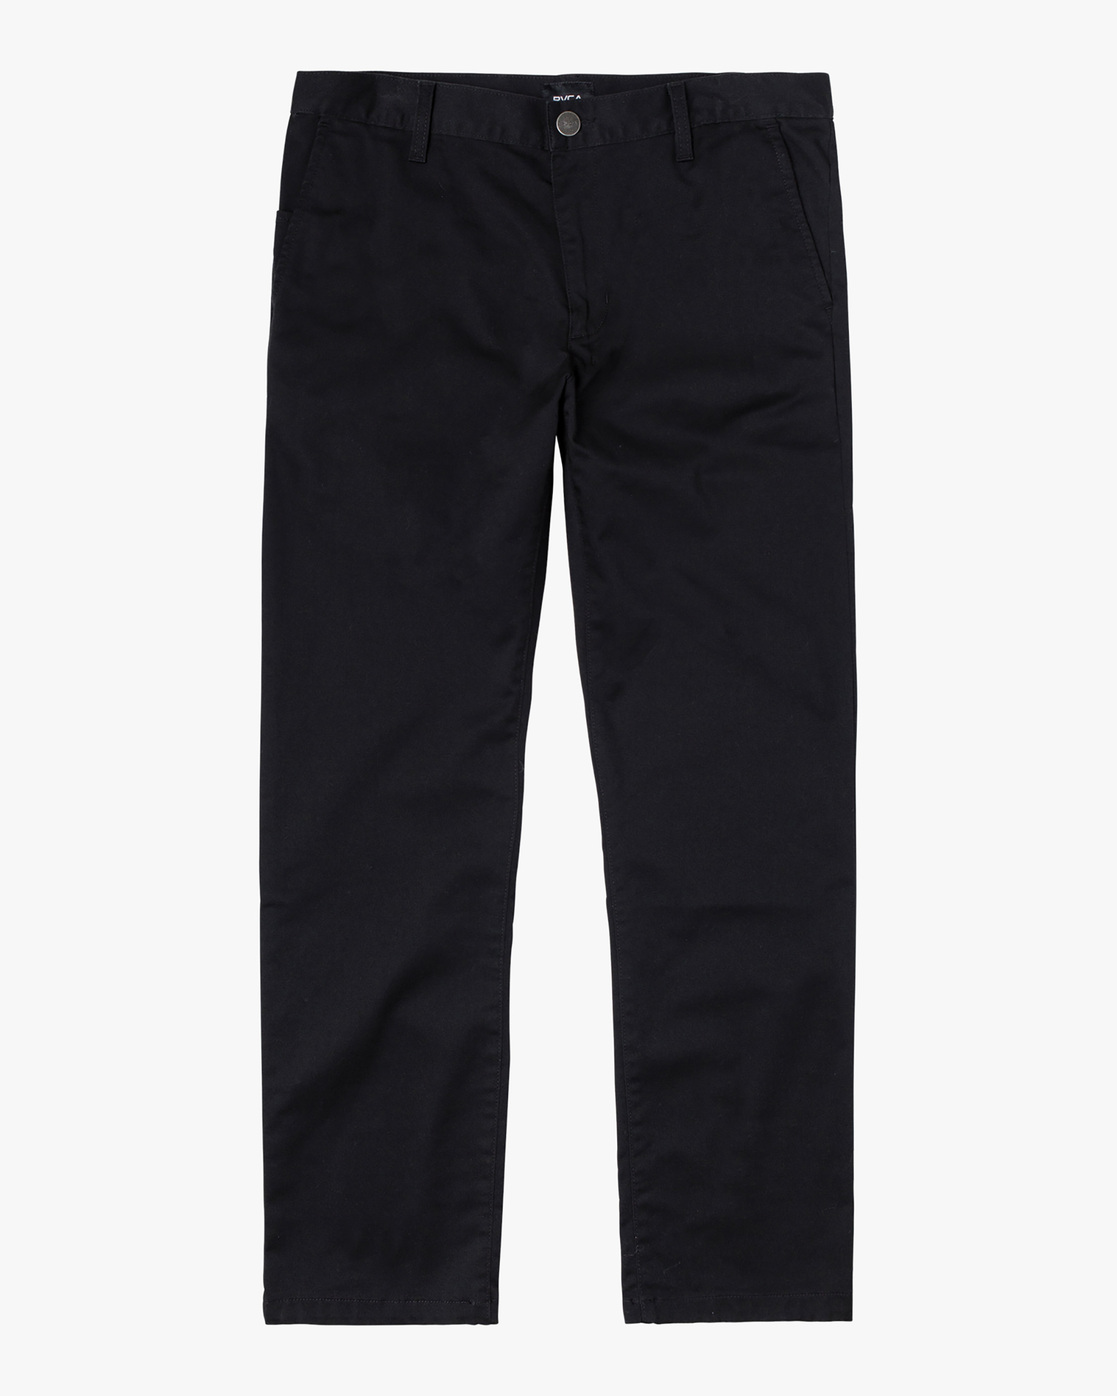 0 week-end Stretch straight fit Pant Black M3493RWS RVCA